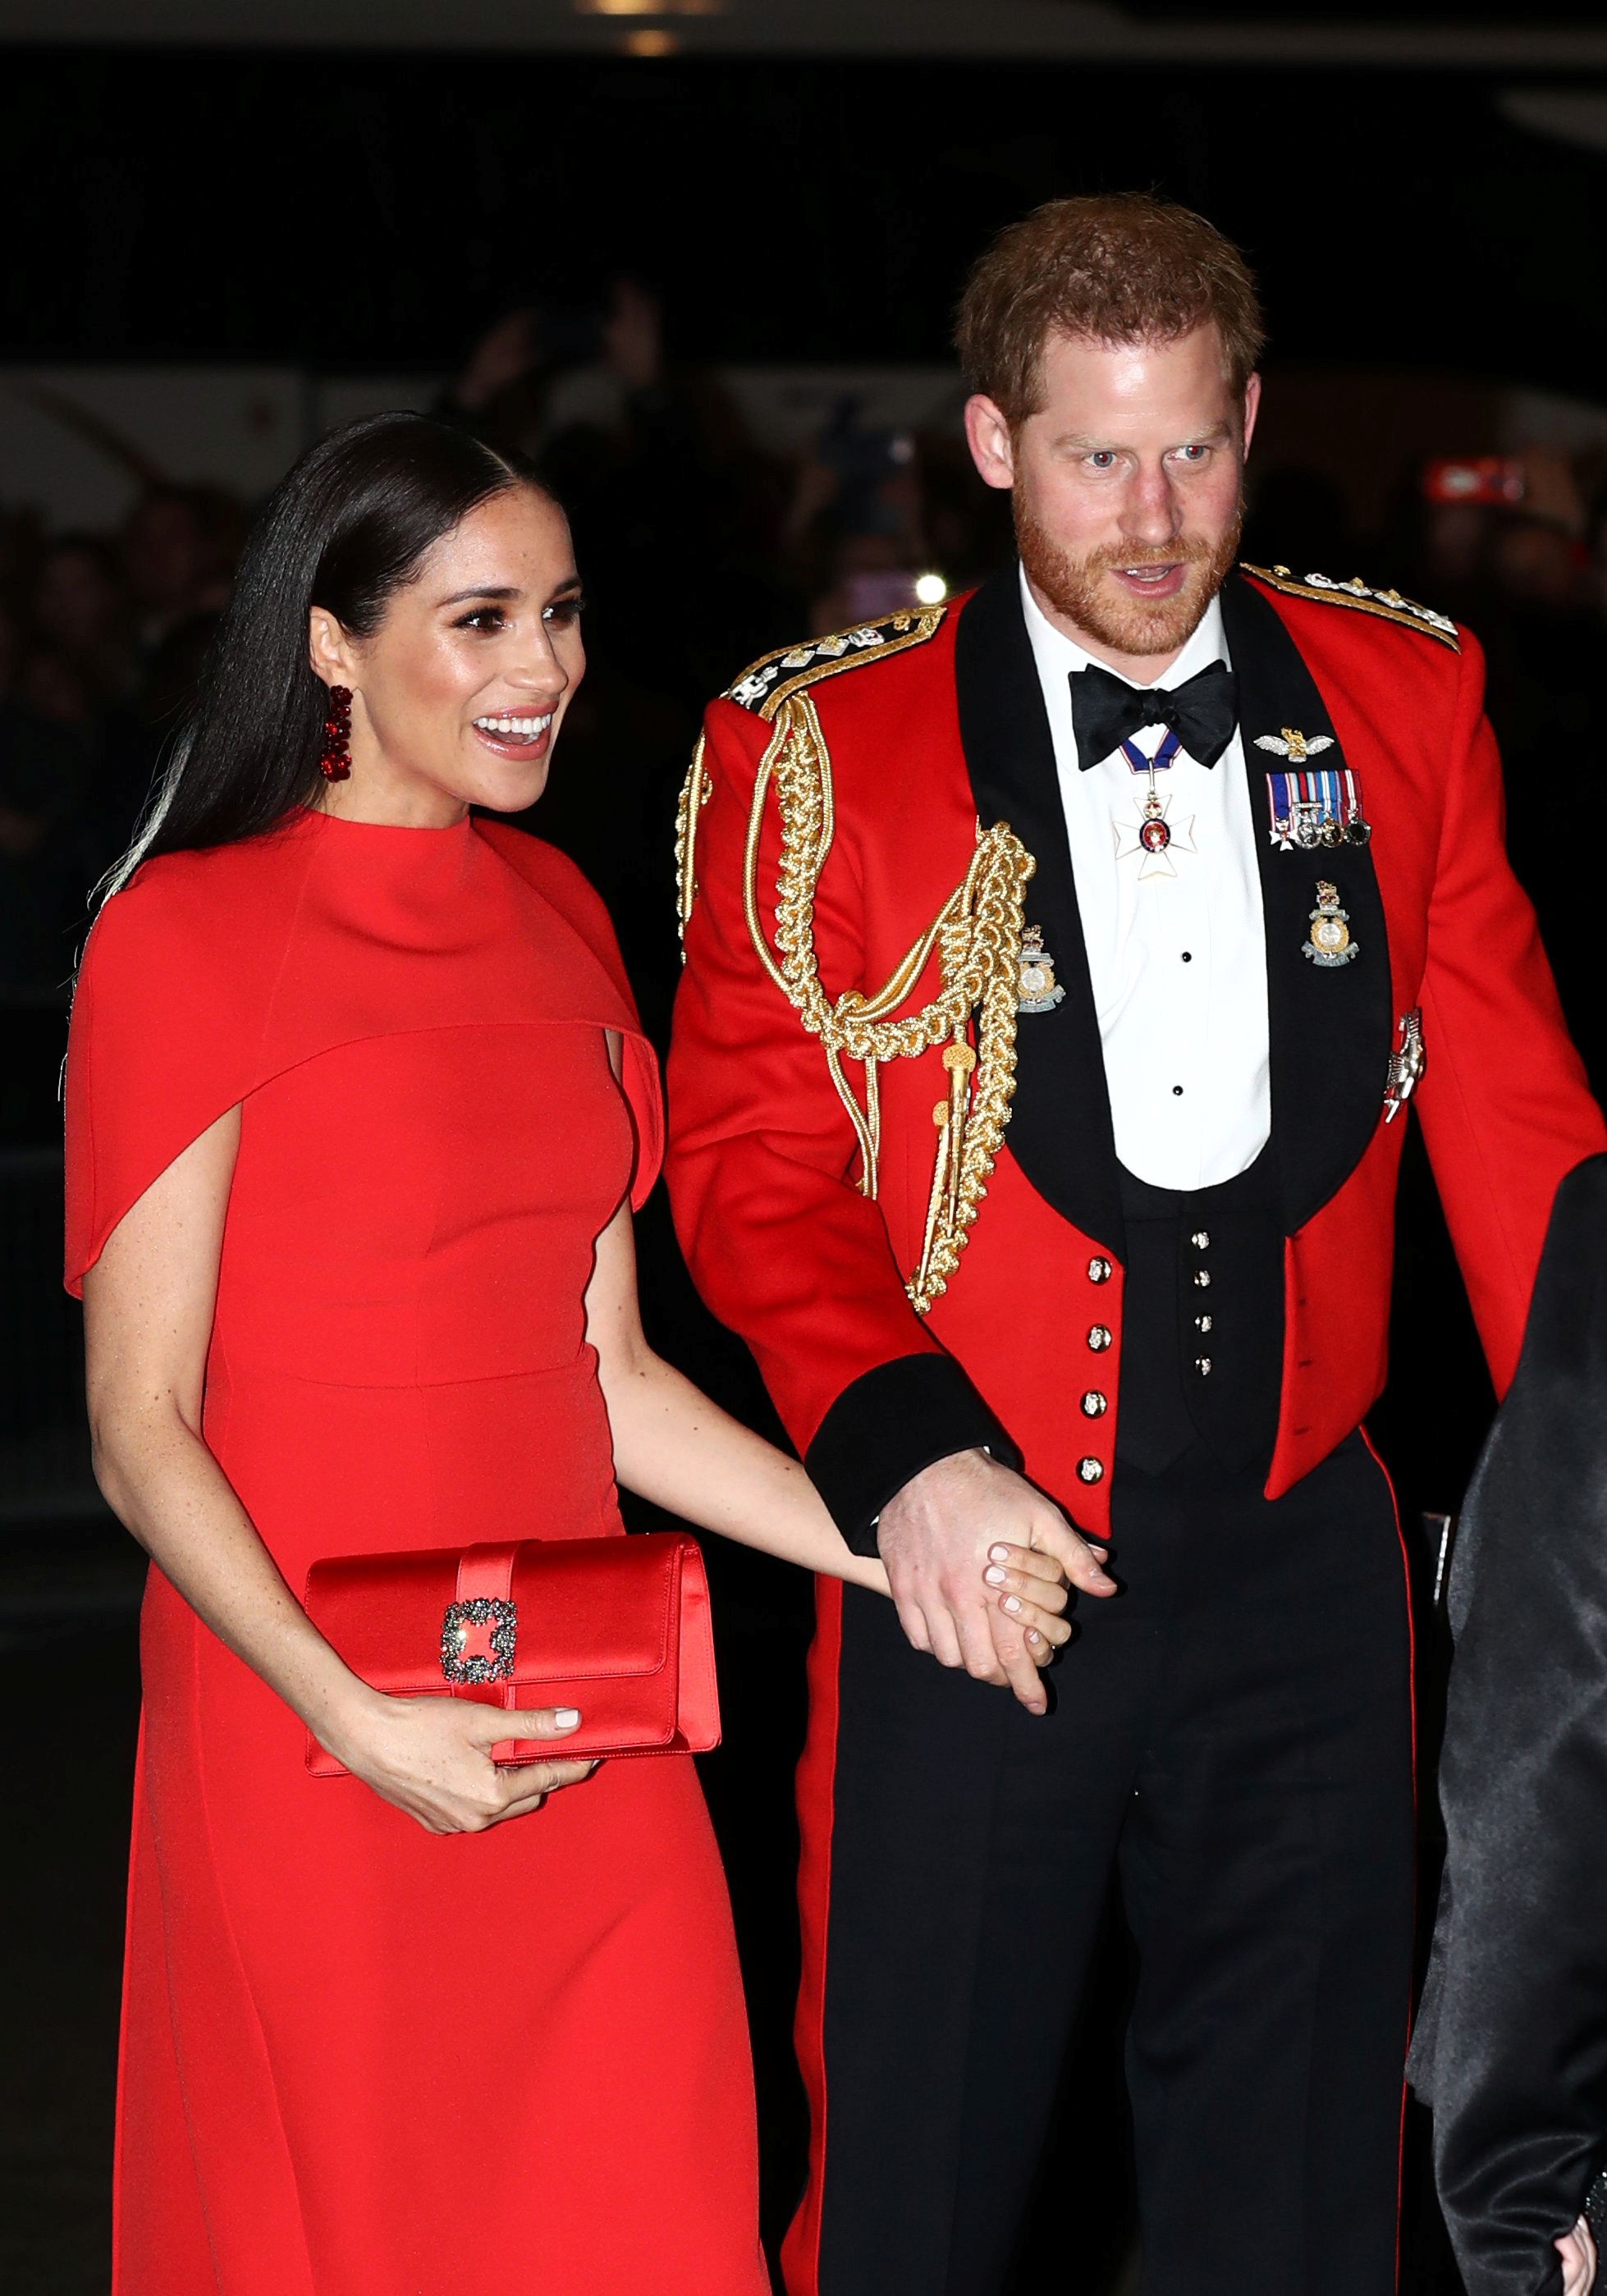 meghan markle comforts prince harry during final royal engagement meghan markle comforts prince harry